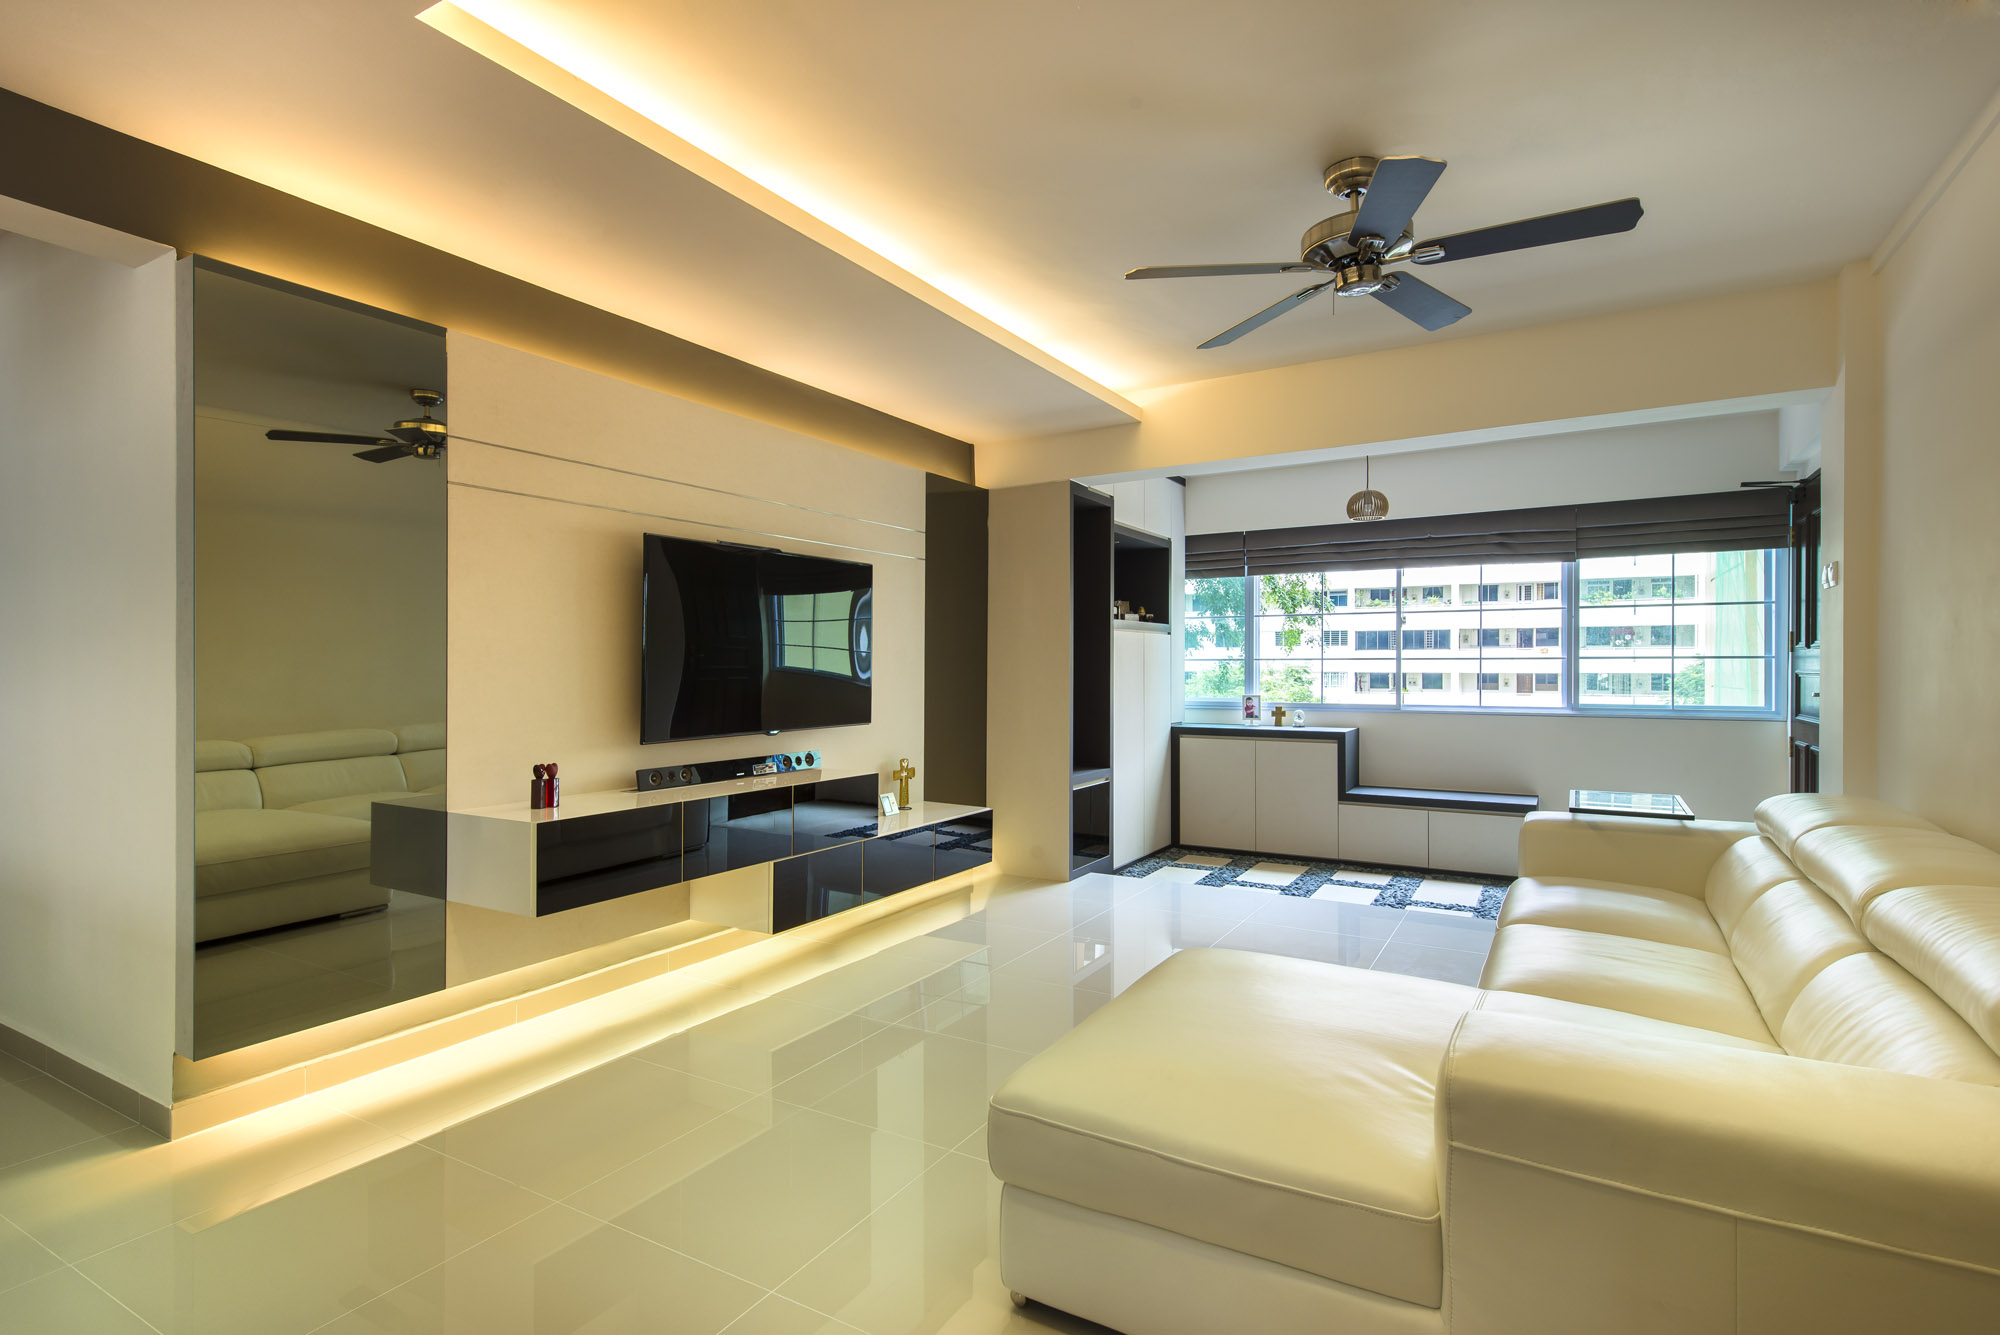 Case study hdb 5 rooms at bedok rezt relax interior for Interior design 4 room